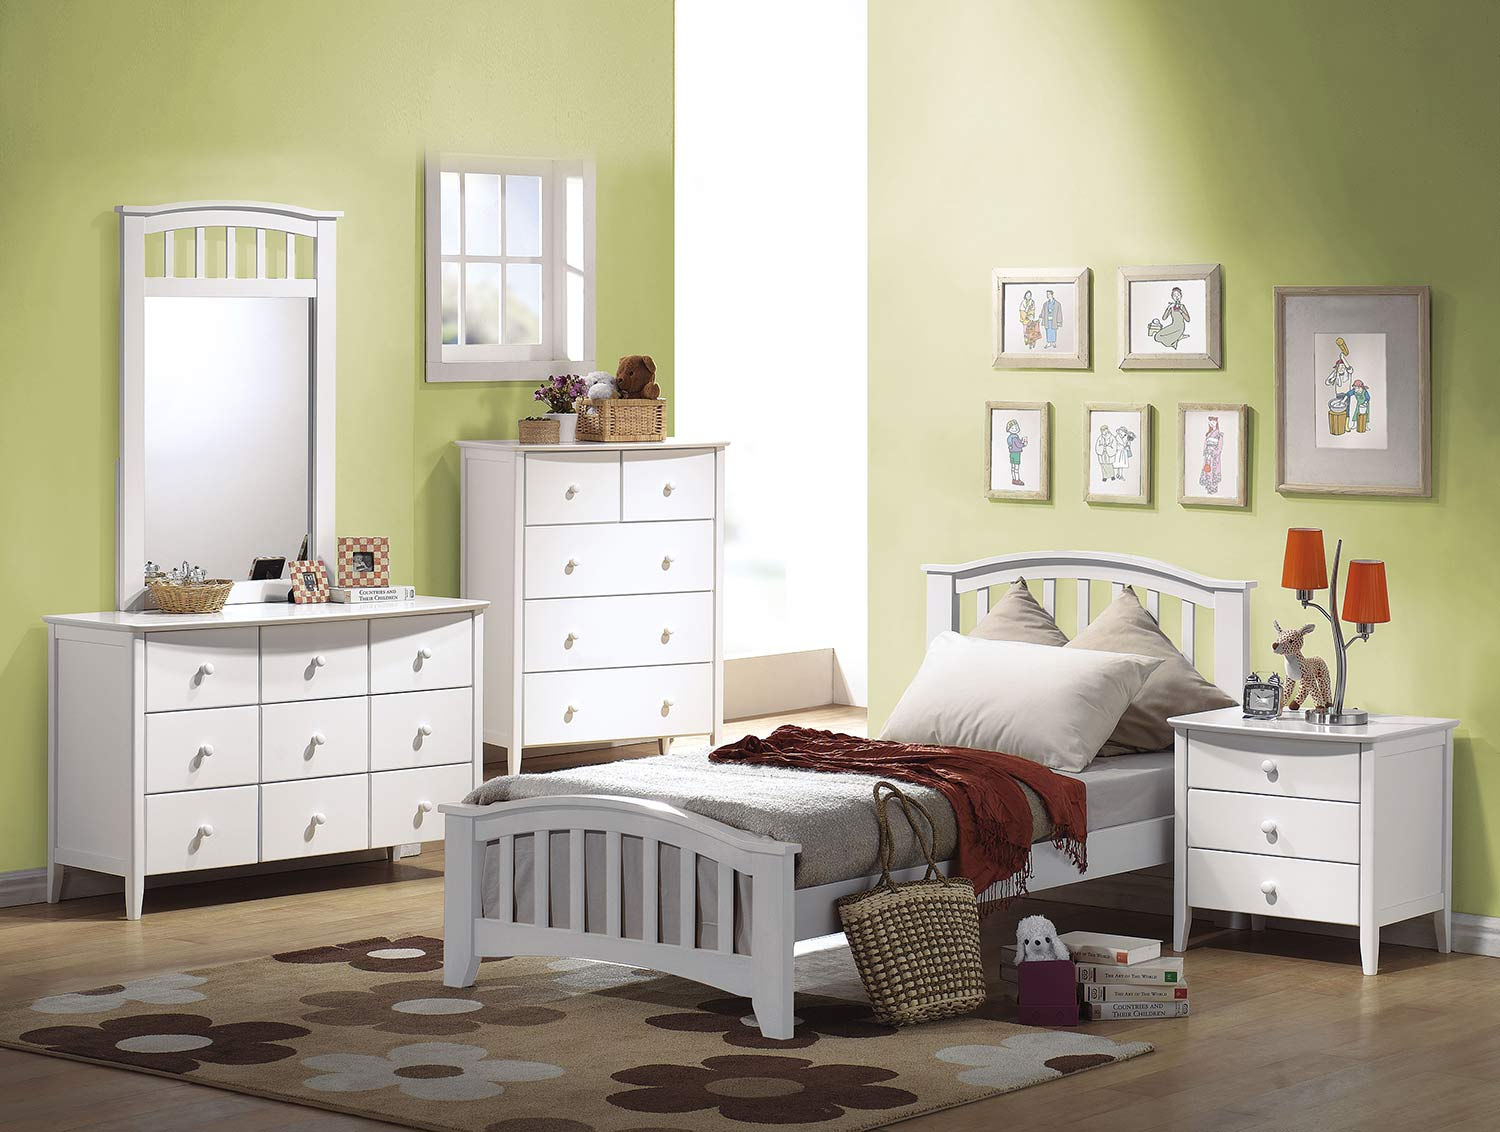 Acme San Marino Bedroom Set - White